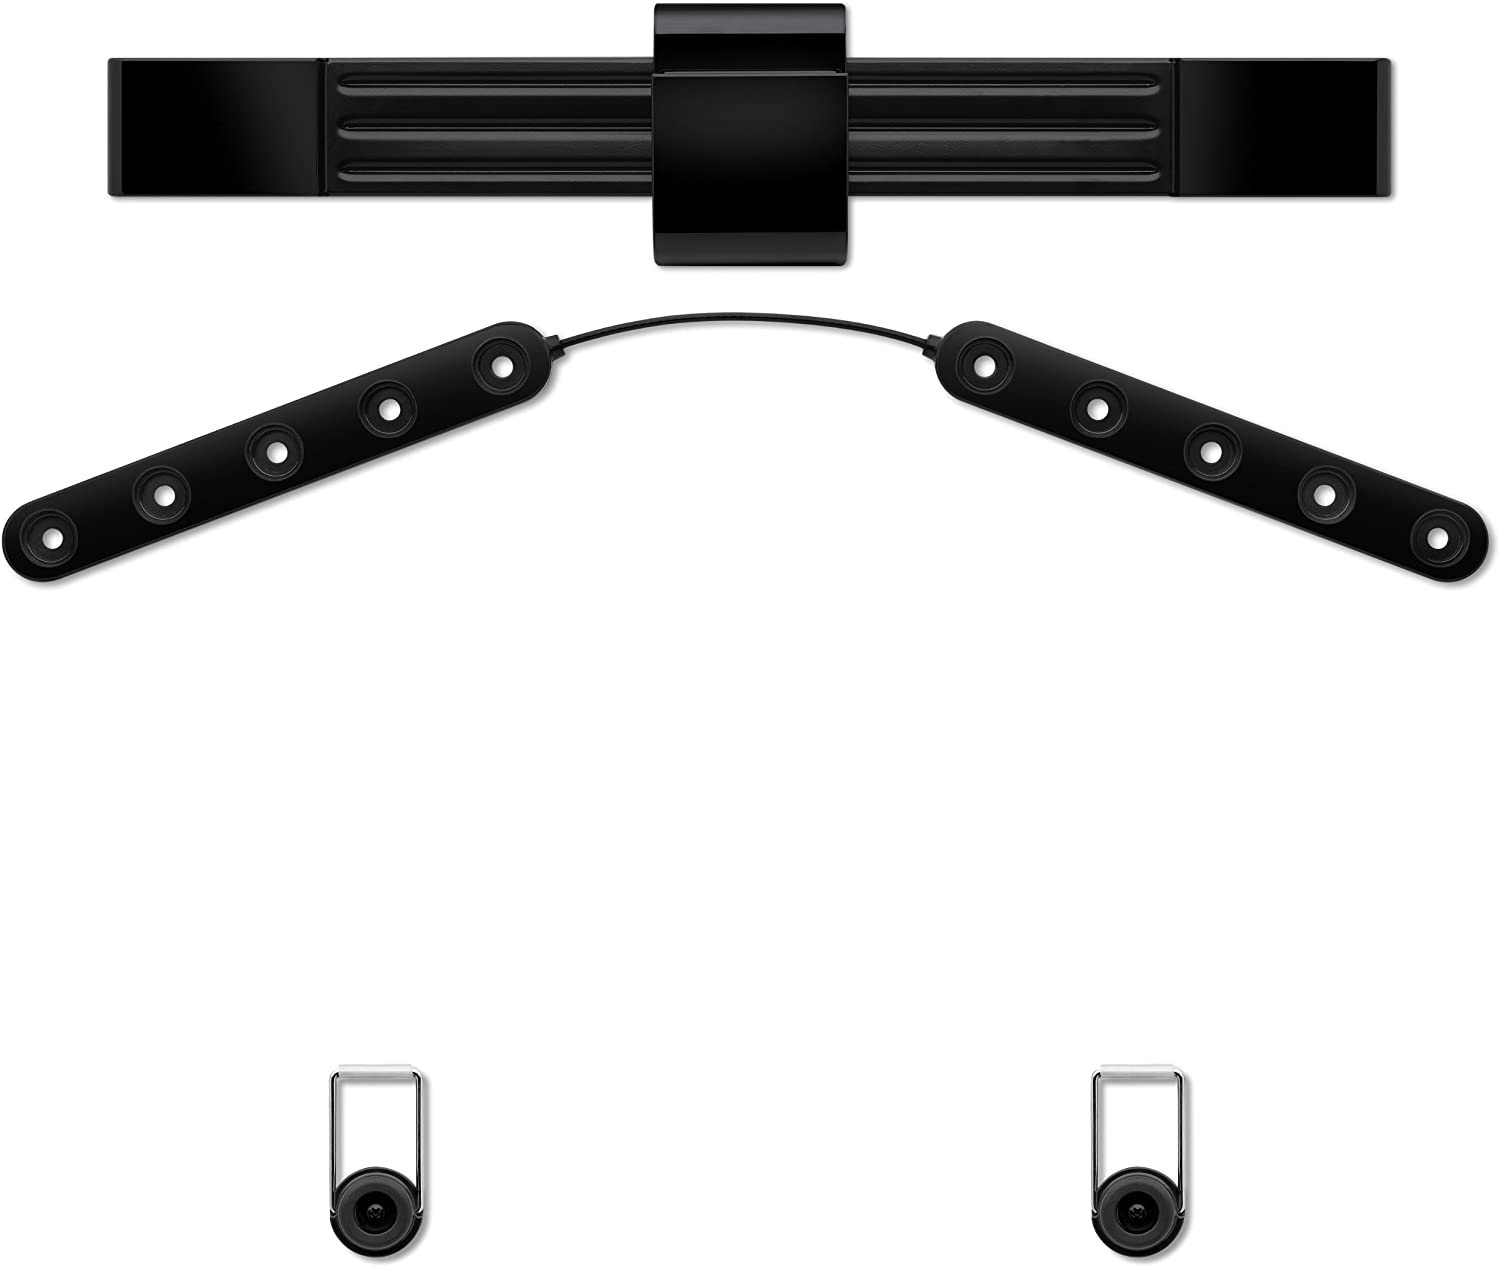 Sony Proforma WM60 32-60-Inch Gallery Style Flat TV Mount Easy Inssizetion Solid and Secure